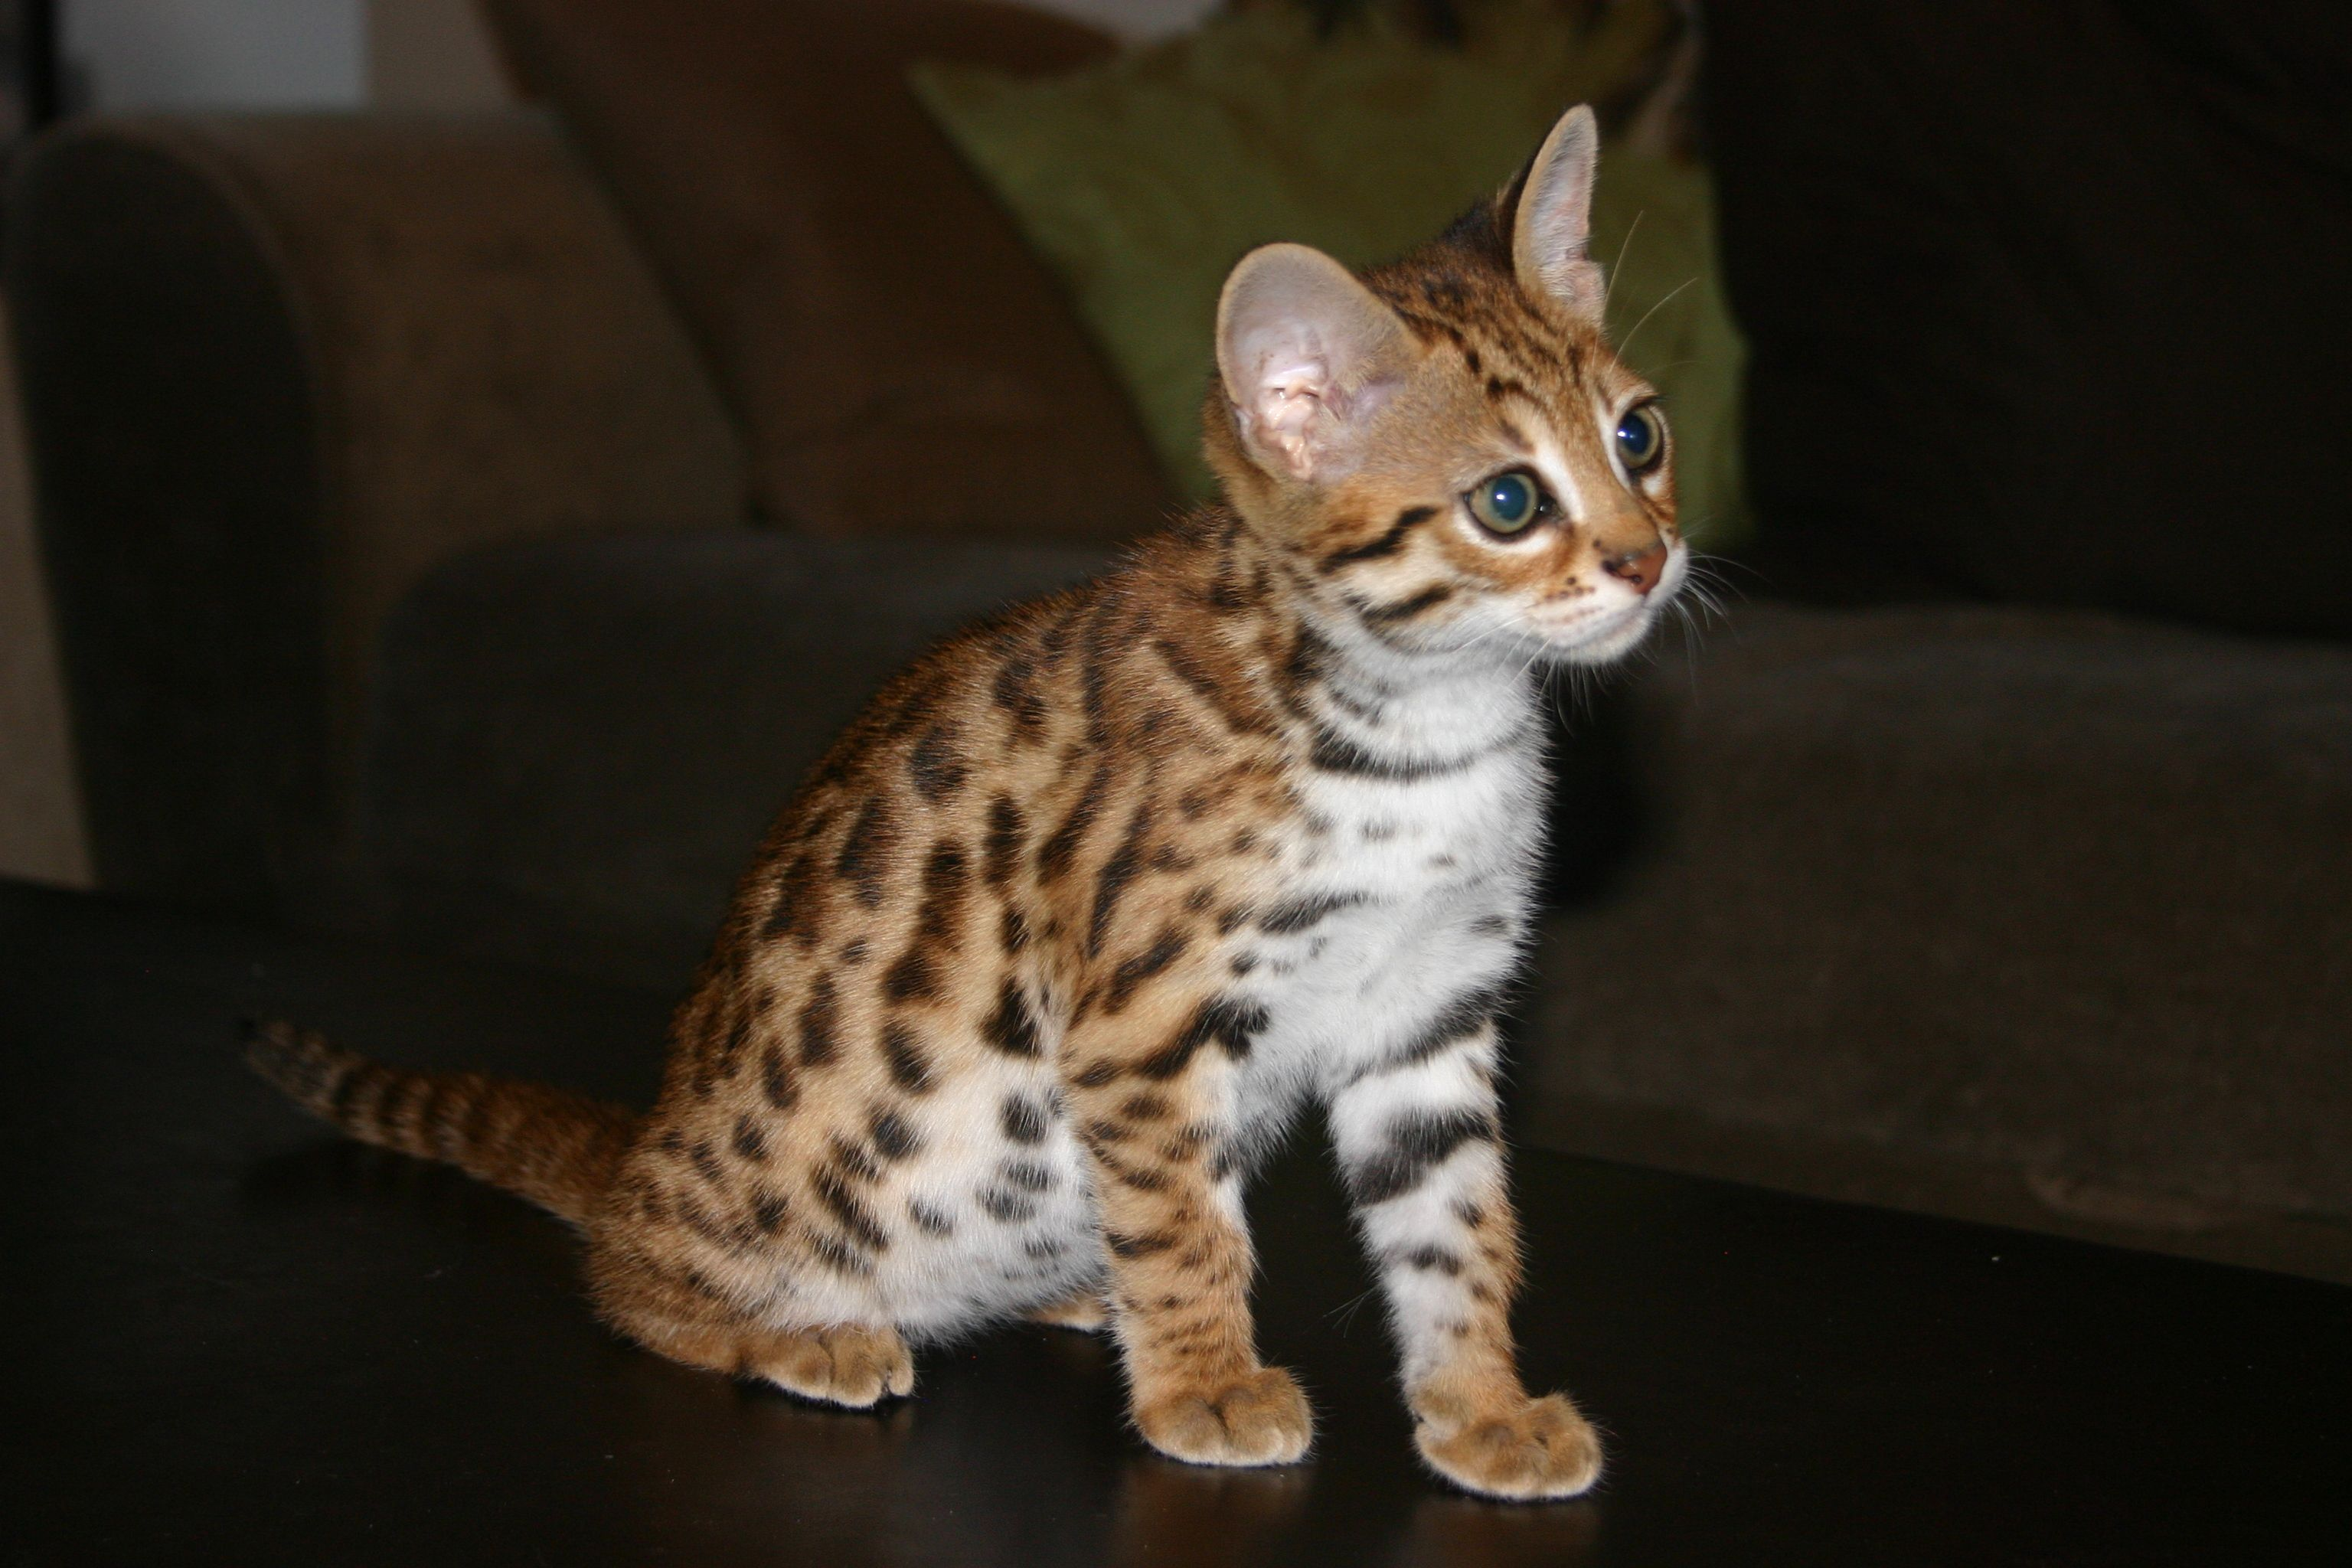 This is Sicily an F1 Bengal first generation from the Asian